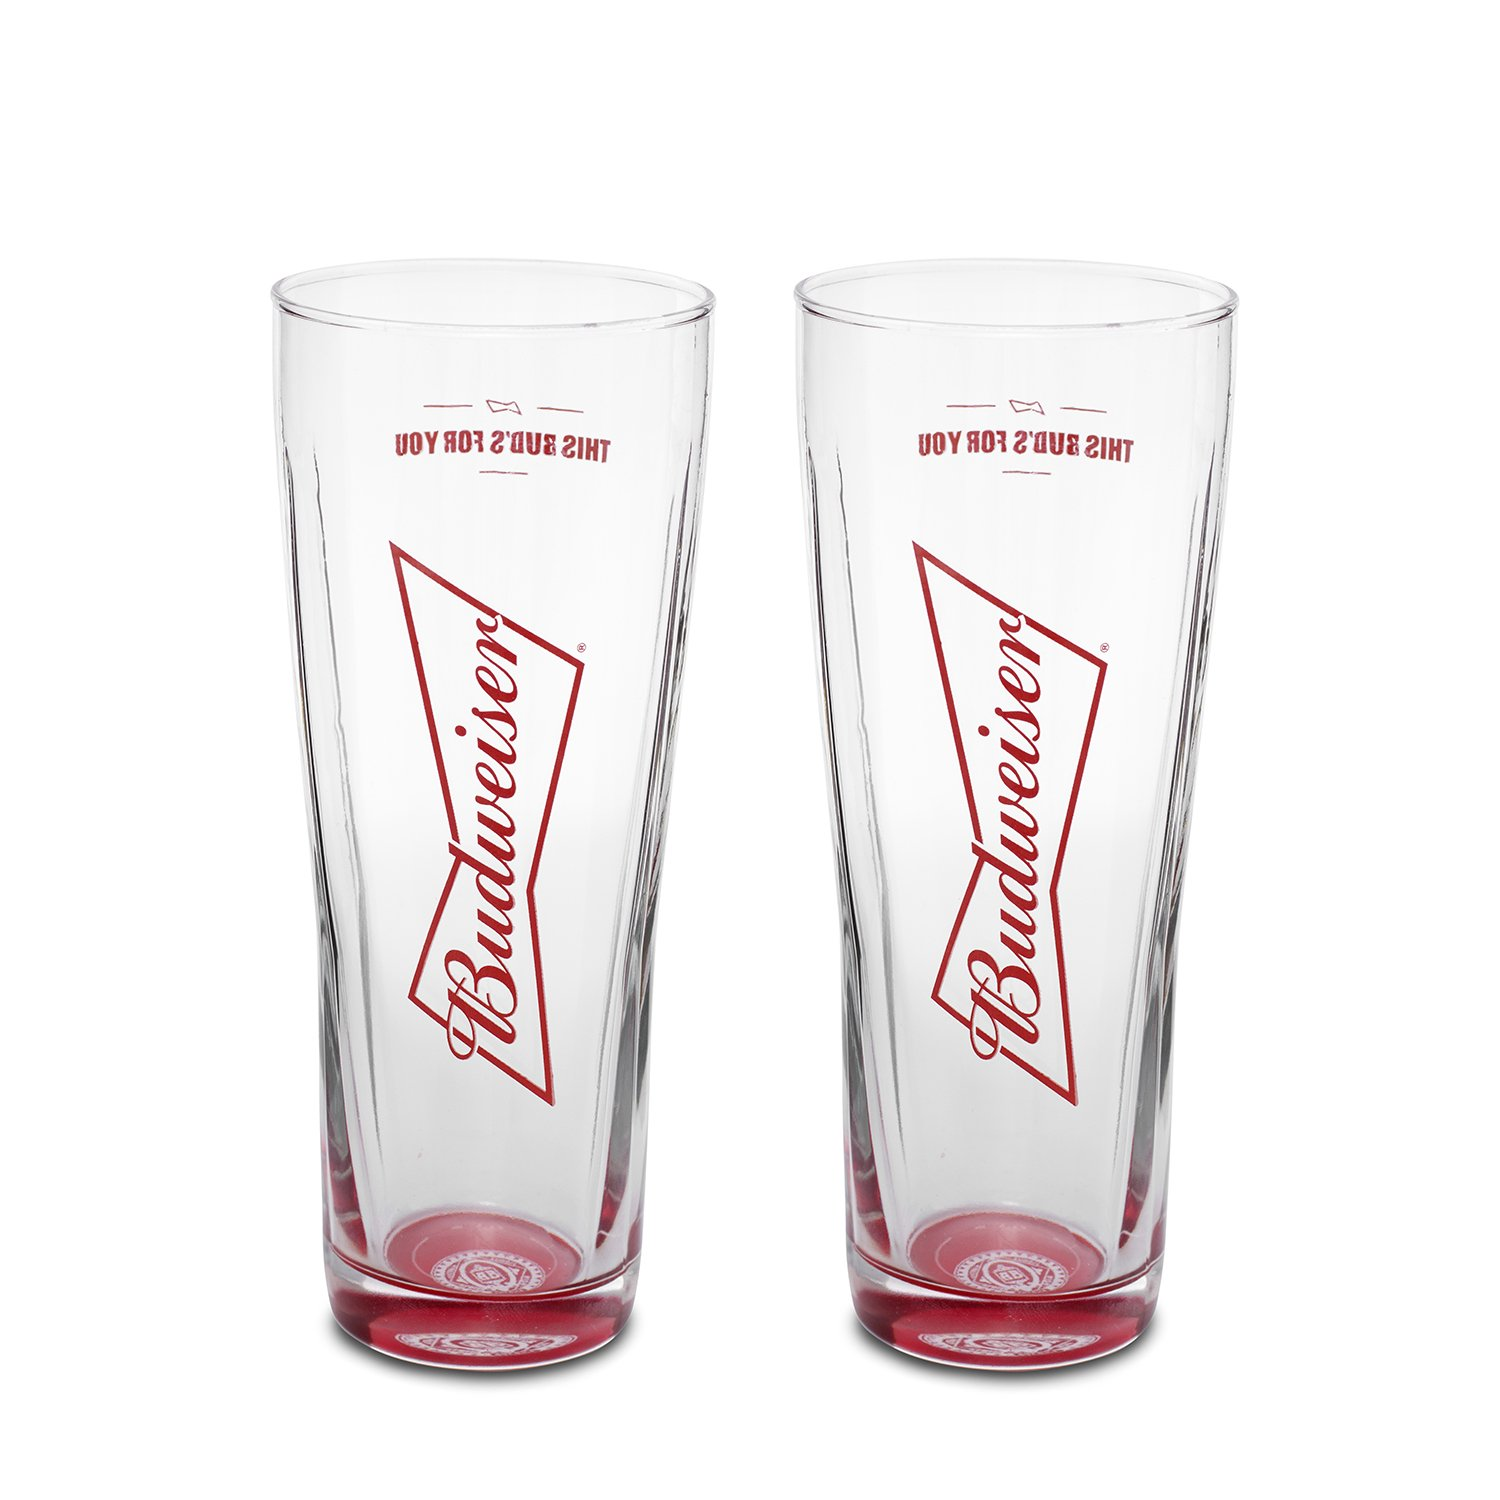 Budweiser 2-Pack Dream Beer Glass, 16oz